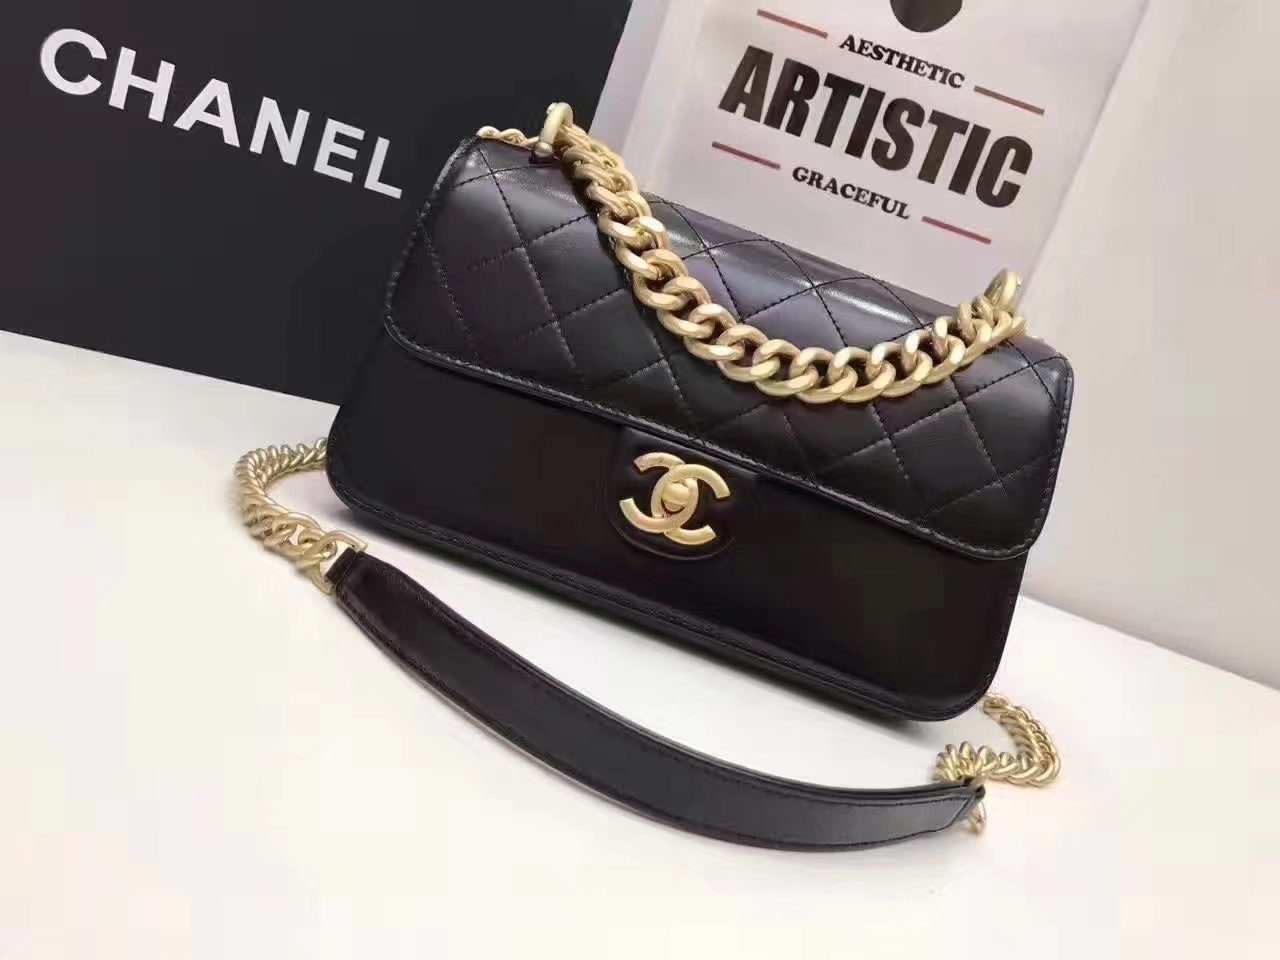 Original Quality Chanel Flap Bag With Chain Tote Black Calfskin Gold Metal